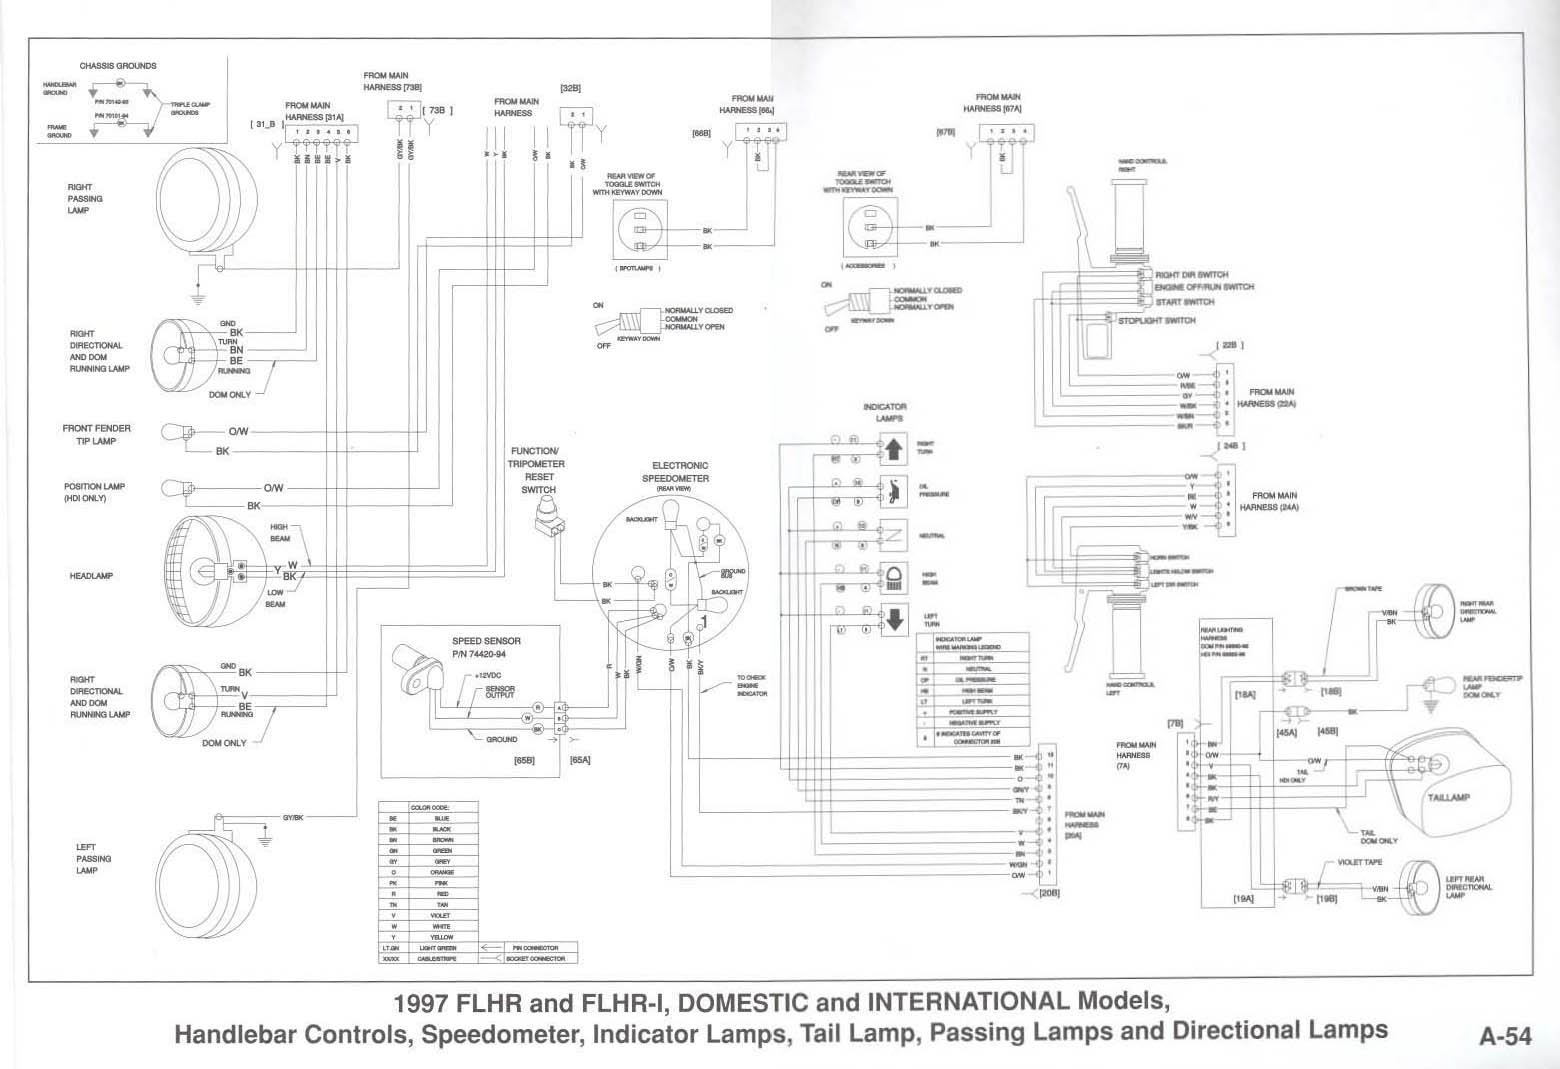 [DIAGRAM_0HG]  GE_0965] Wiring Diagram For 1997 Softail Wiring Diagram | 1997 Harley Davidson Softail Wiring Diagram |  | Anth Proe Tzici Ungo Awni Eopsy Peted Oidei Vira Mohammedshrine Librar  Wiring 101